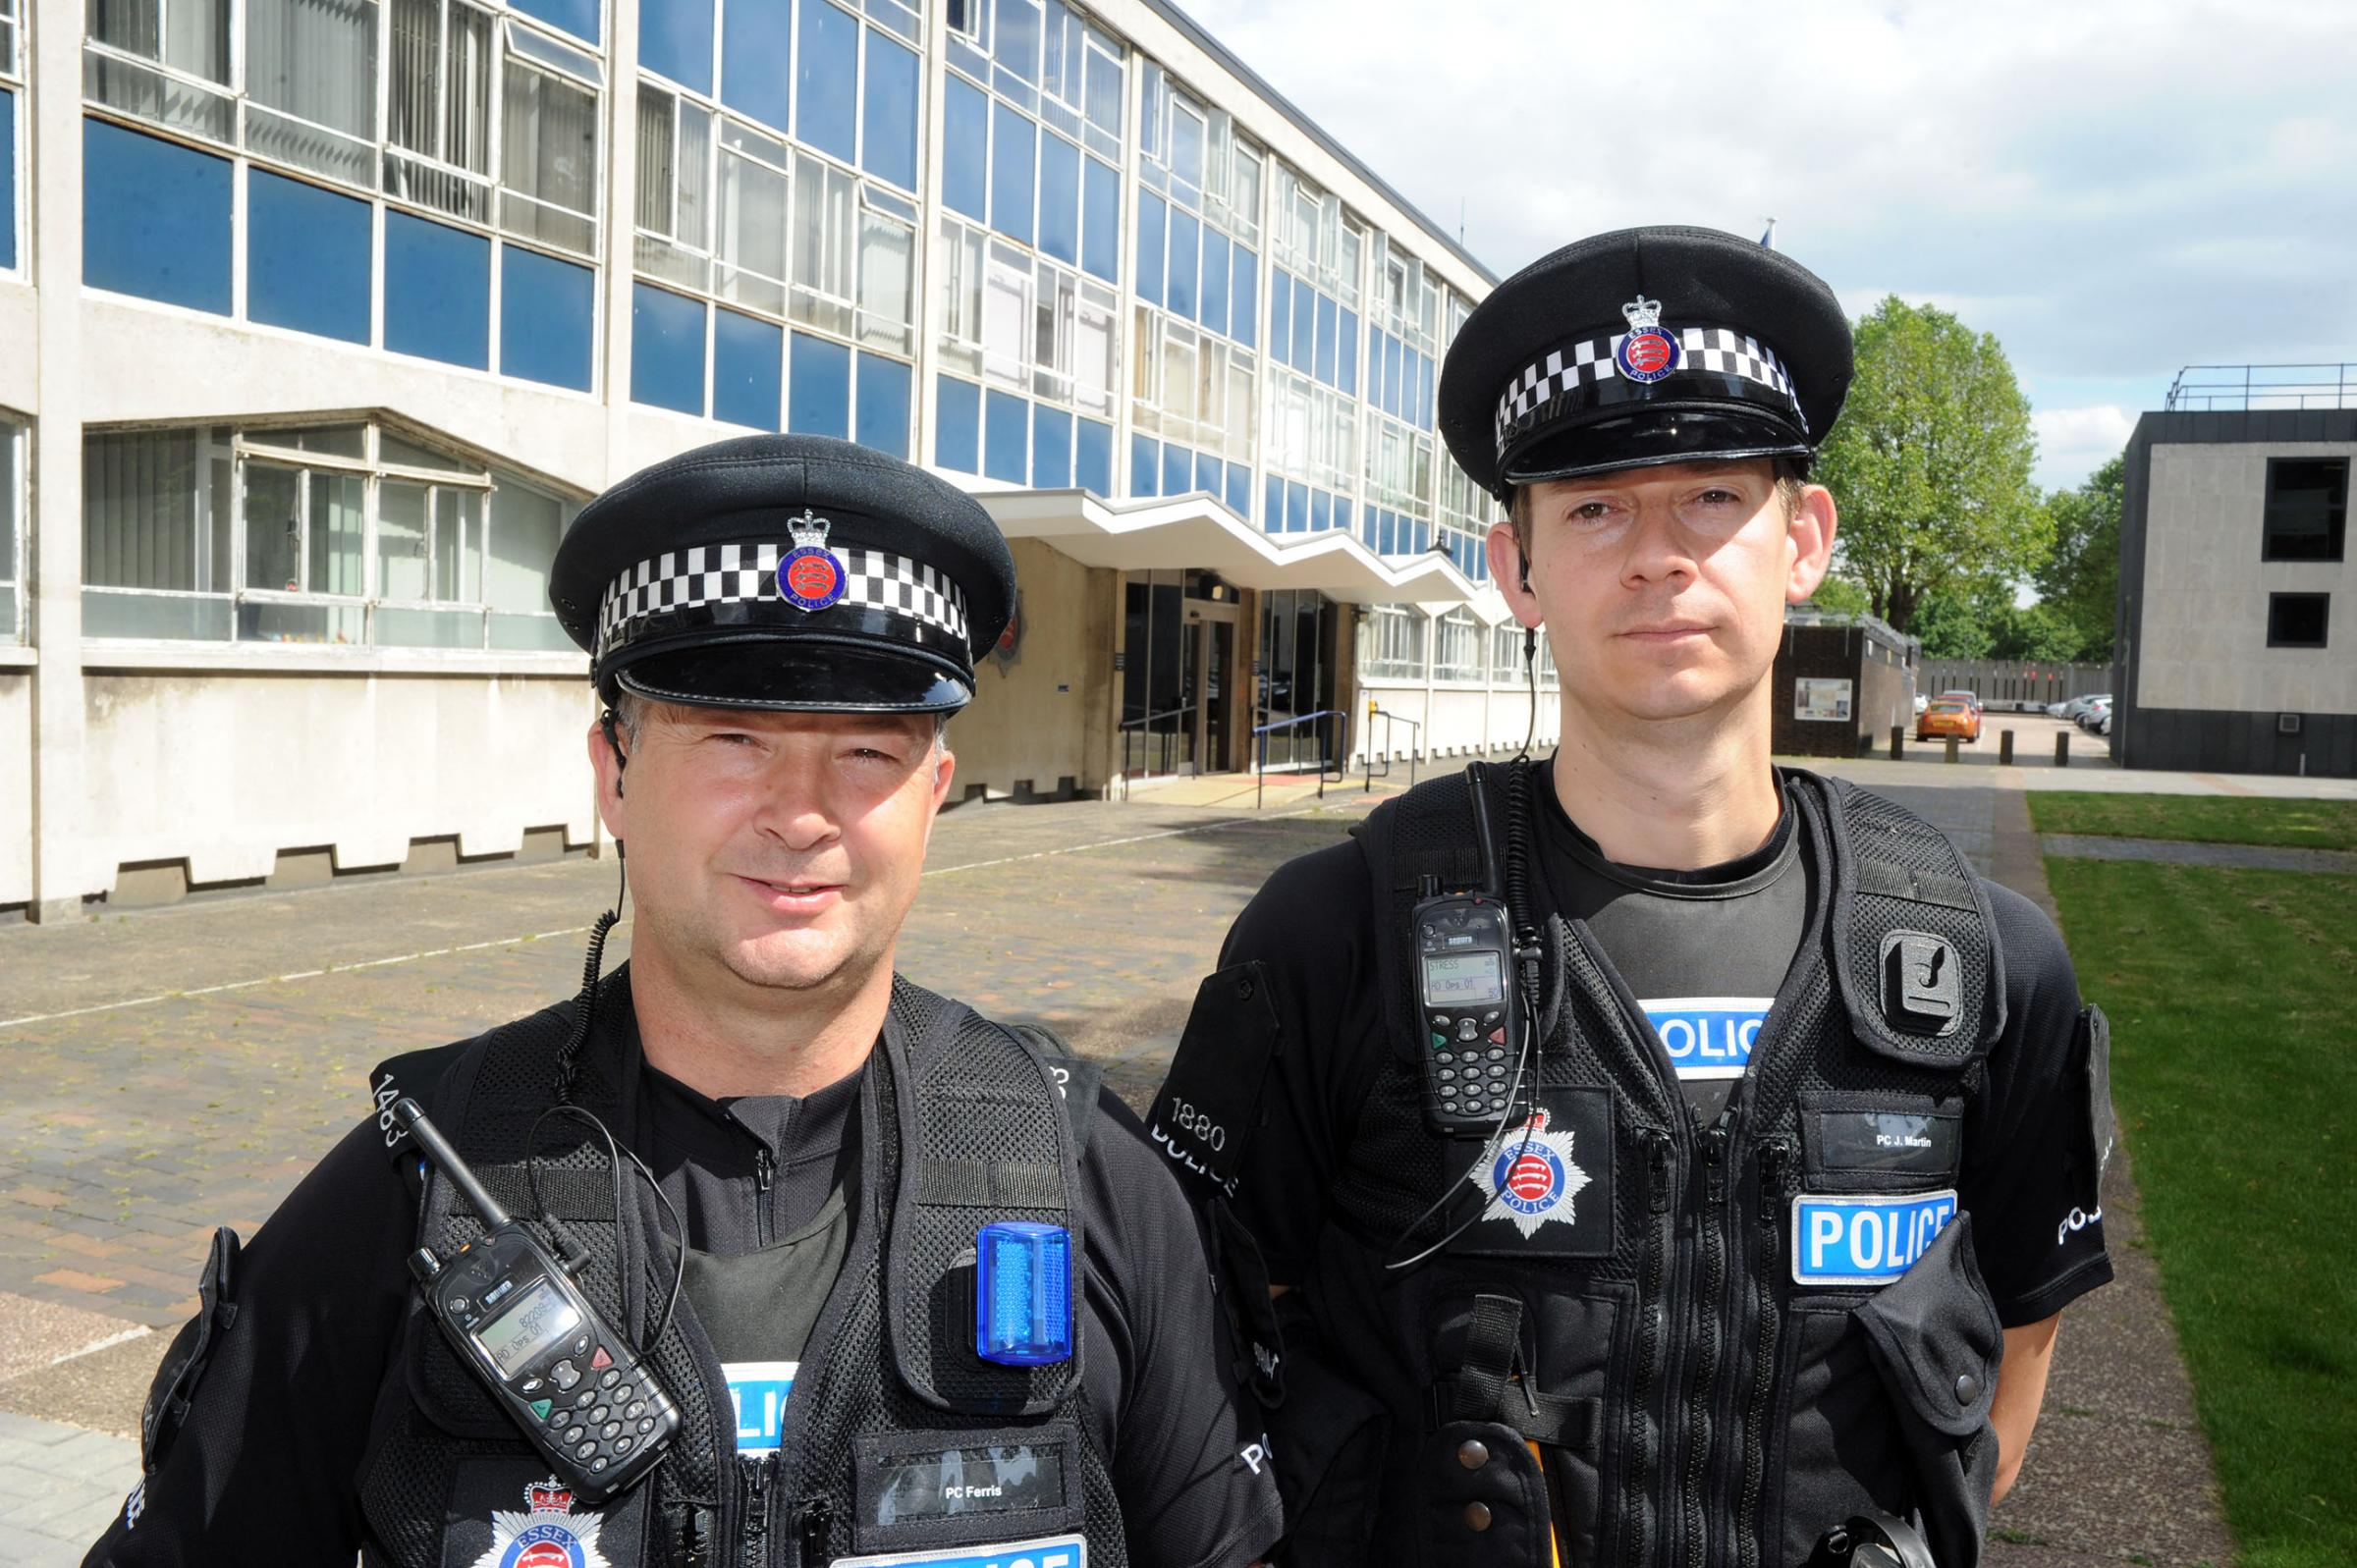 Revamp – officers Stan Ferris and John Martin outside Southend police station